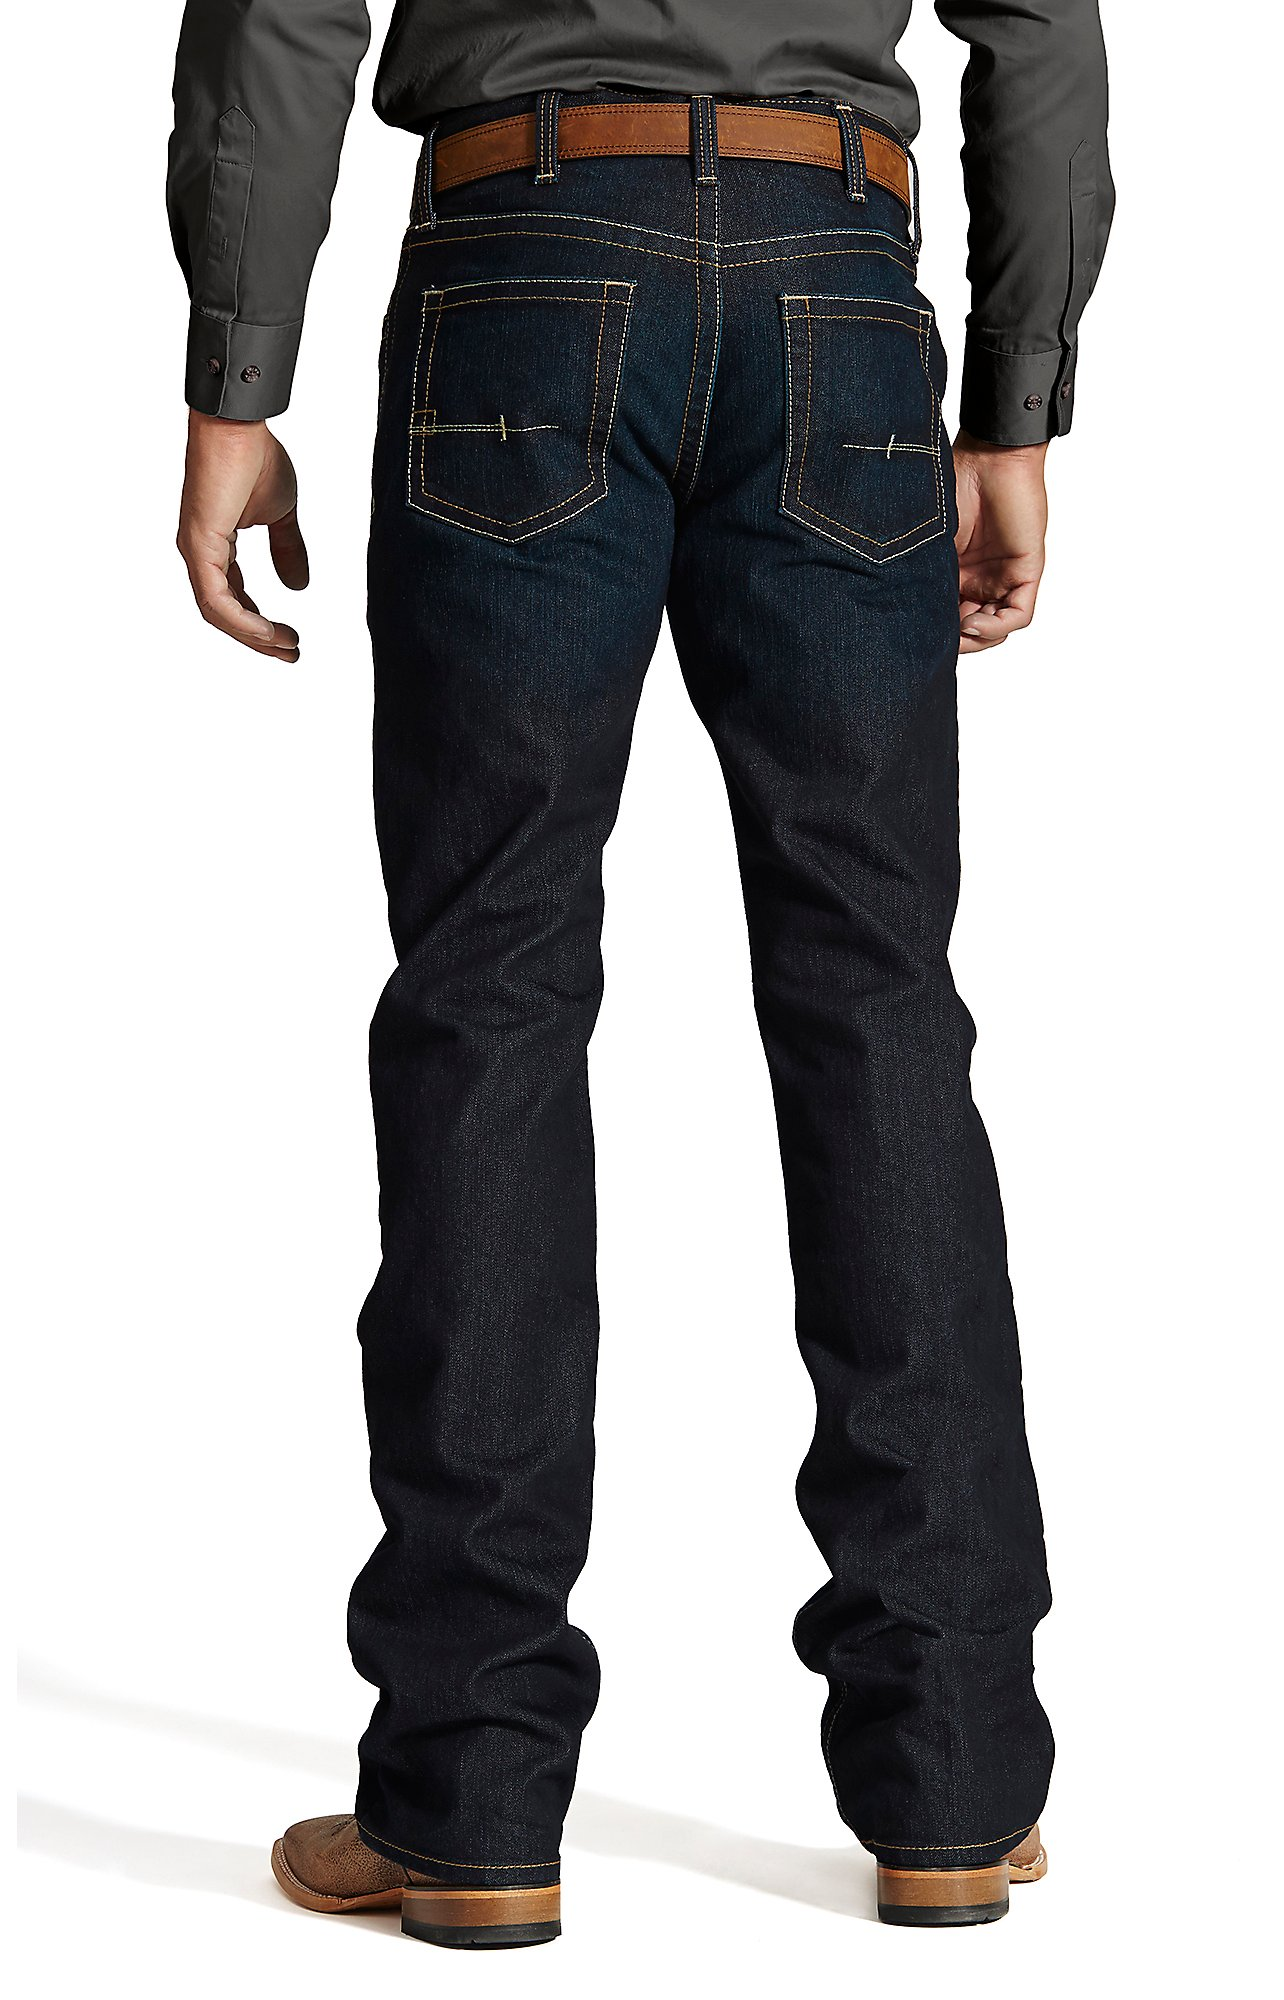 ariat jeans ariat rebar menu0027s dark wash open pocket low rise boot cut work jeans jbphunn